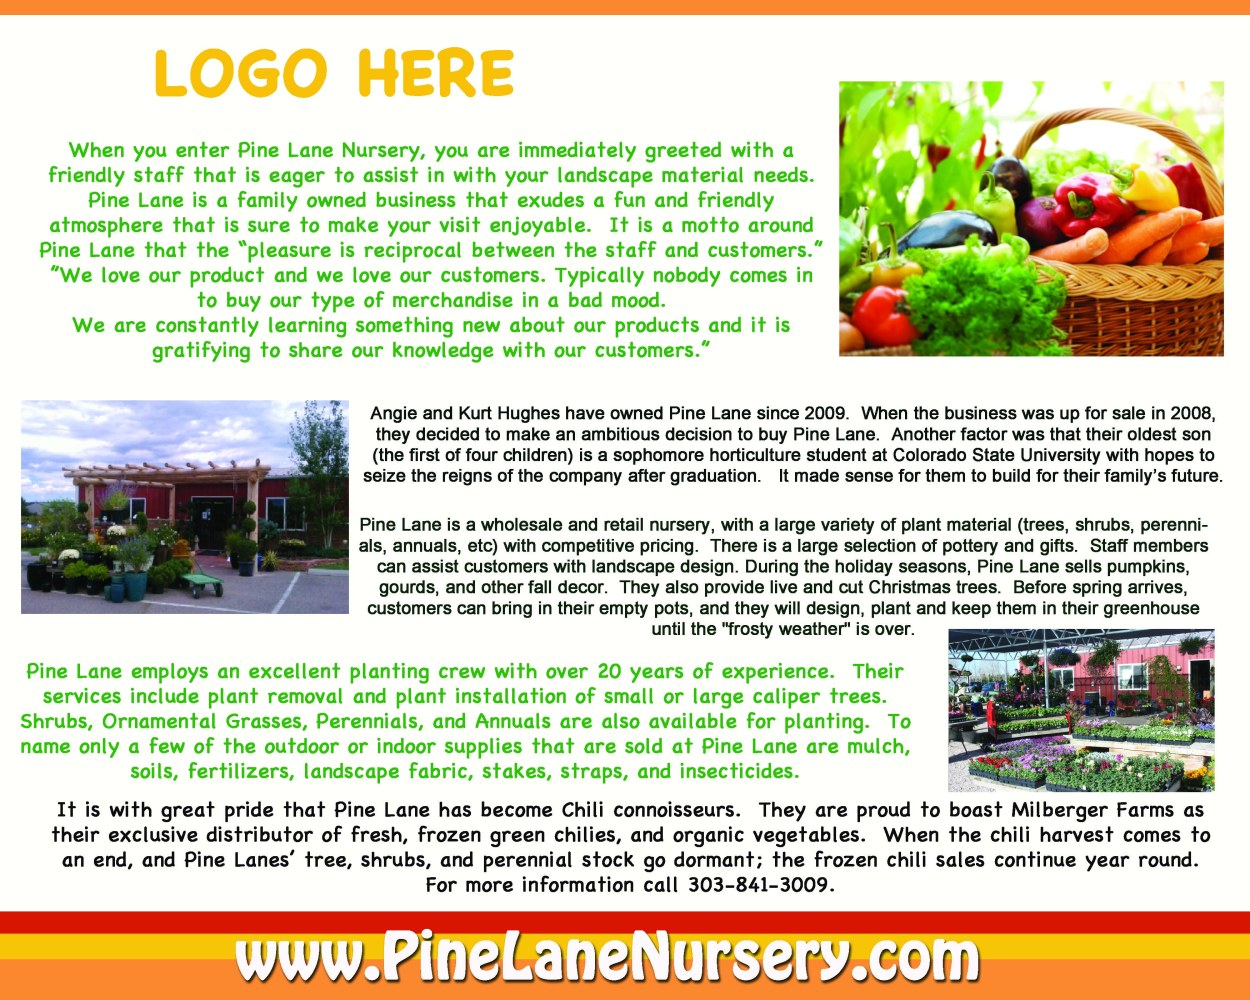 Pine Lane Nursery - Graphics & Advertising from That's Natural! Marketing